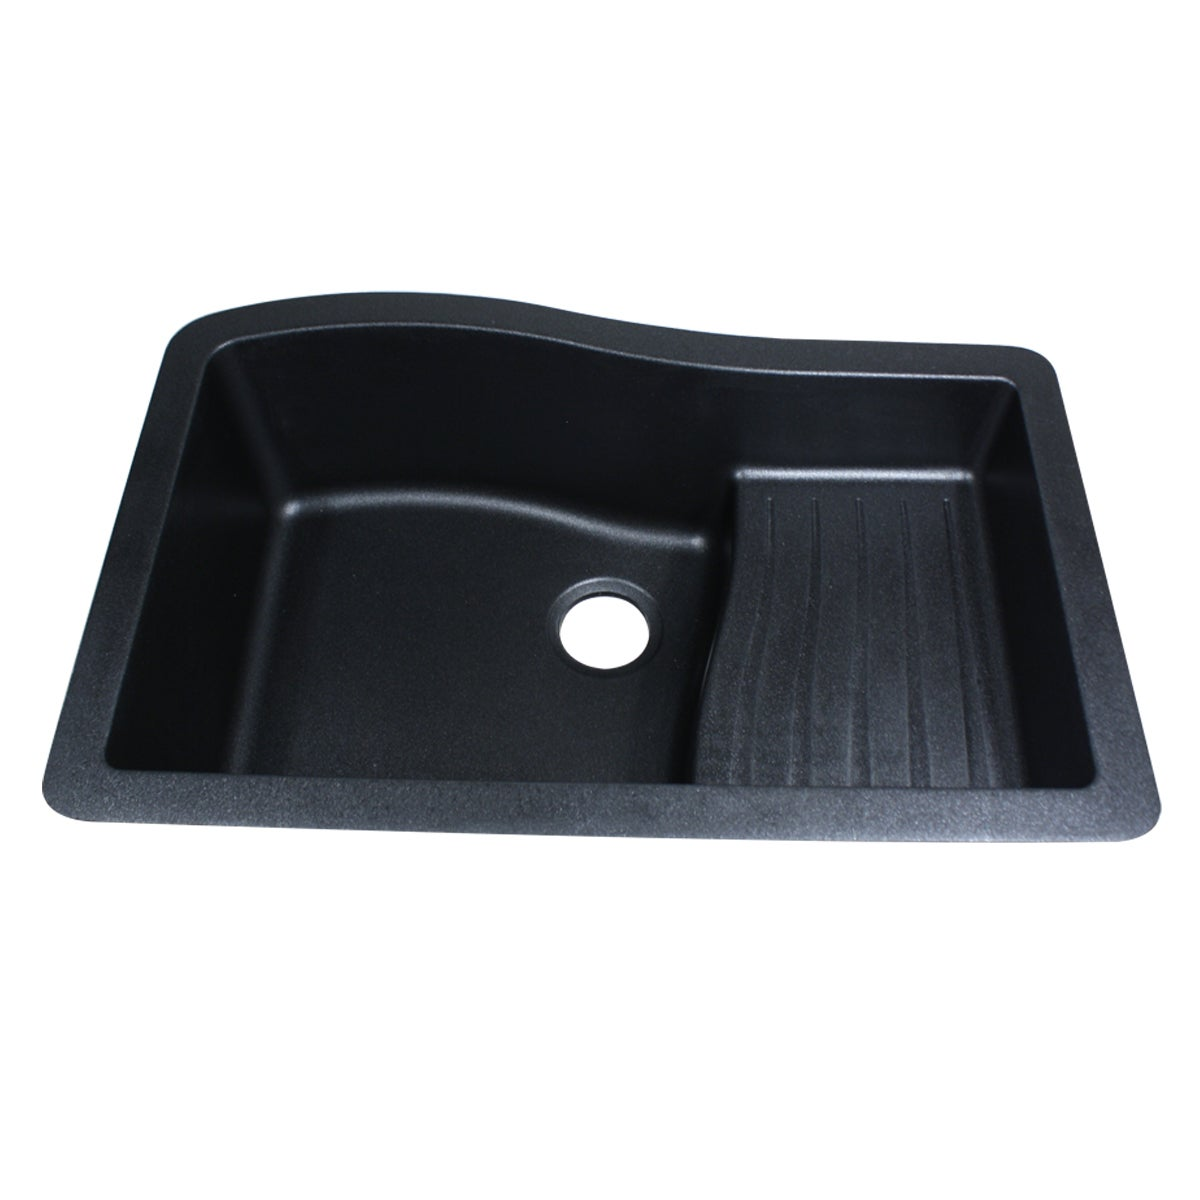 Stone Composite Sink : granite composite kitchen sink granite sink reviews and ratings ...